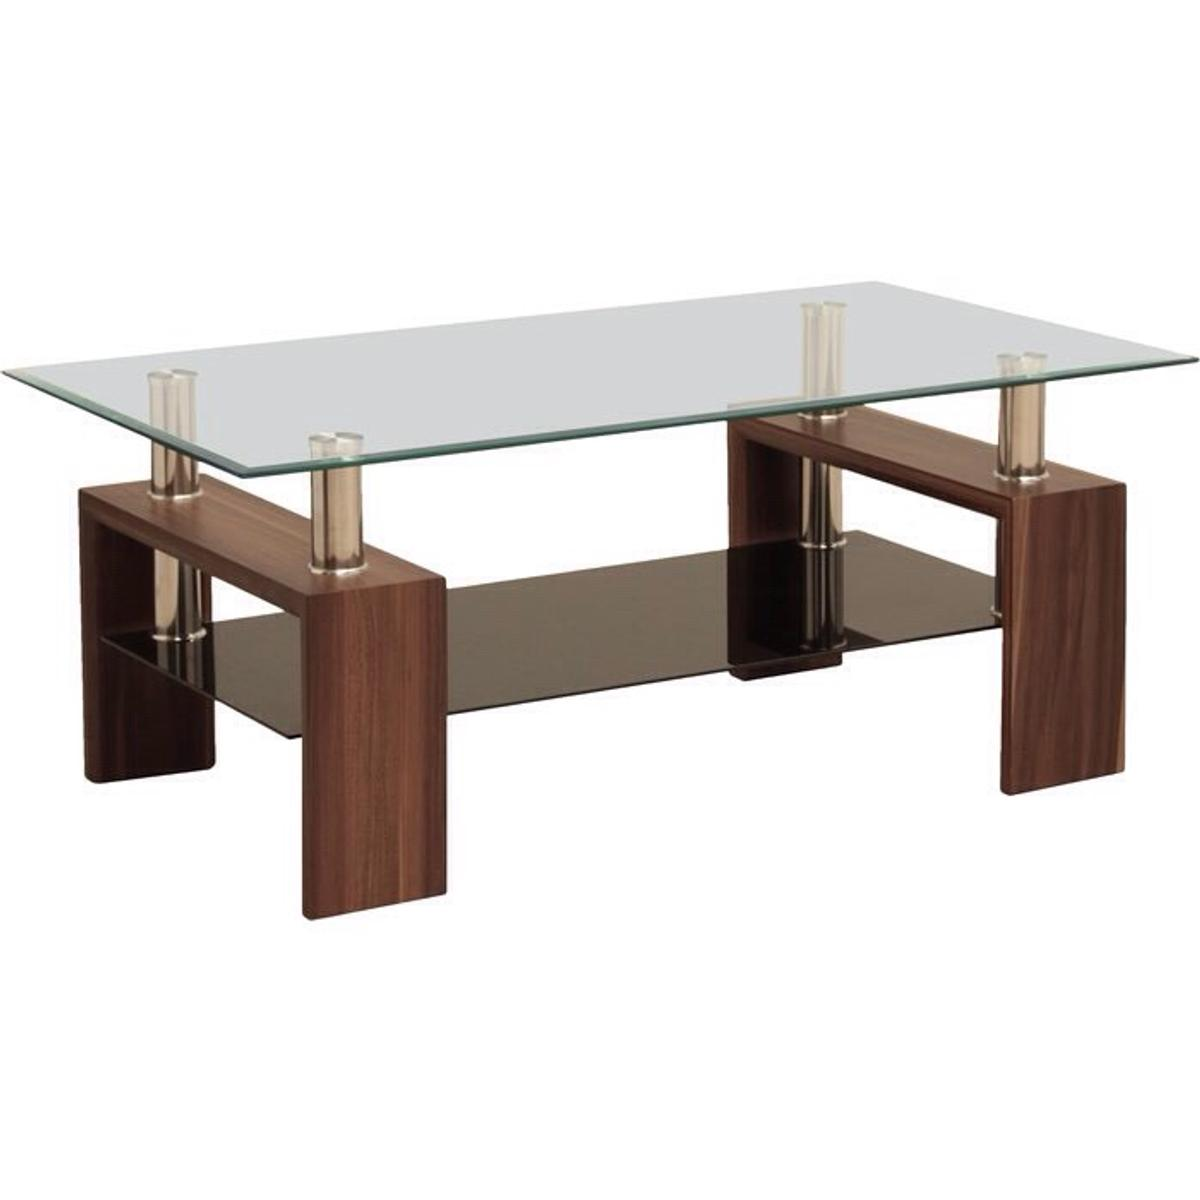 Dfs Coffee Table Nexus In M23 Trafford For £60.00 For Sale